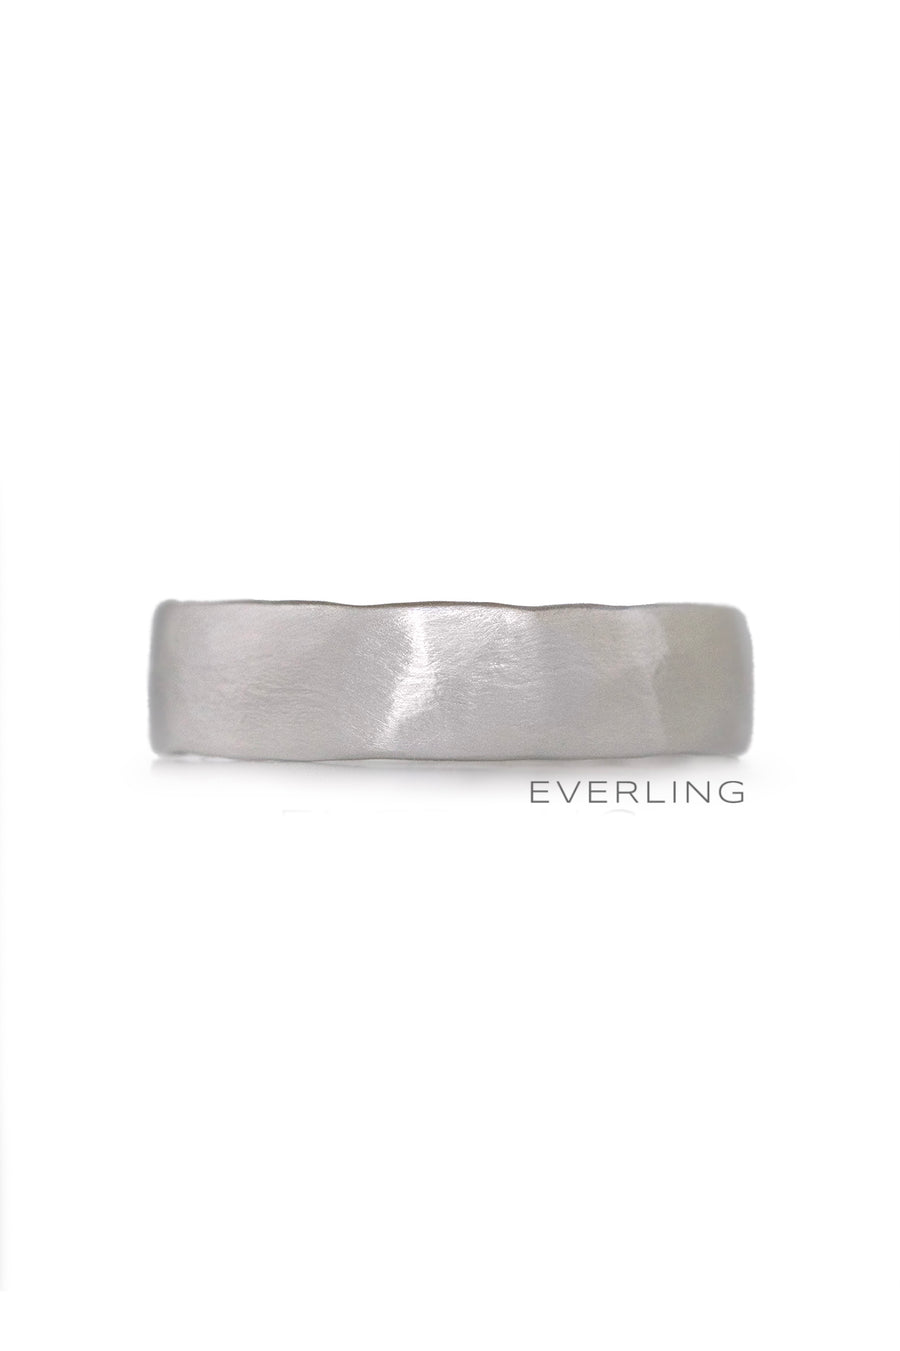 Up-cycled 14K White Gold Textured Band #weddingbands #designerjewelry www.everlingjewelry.com